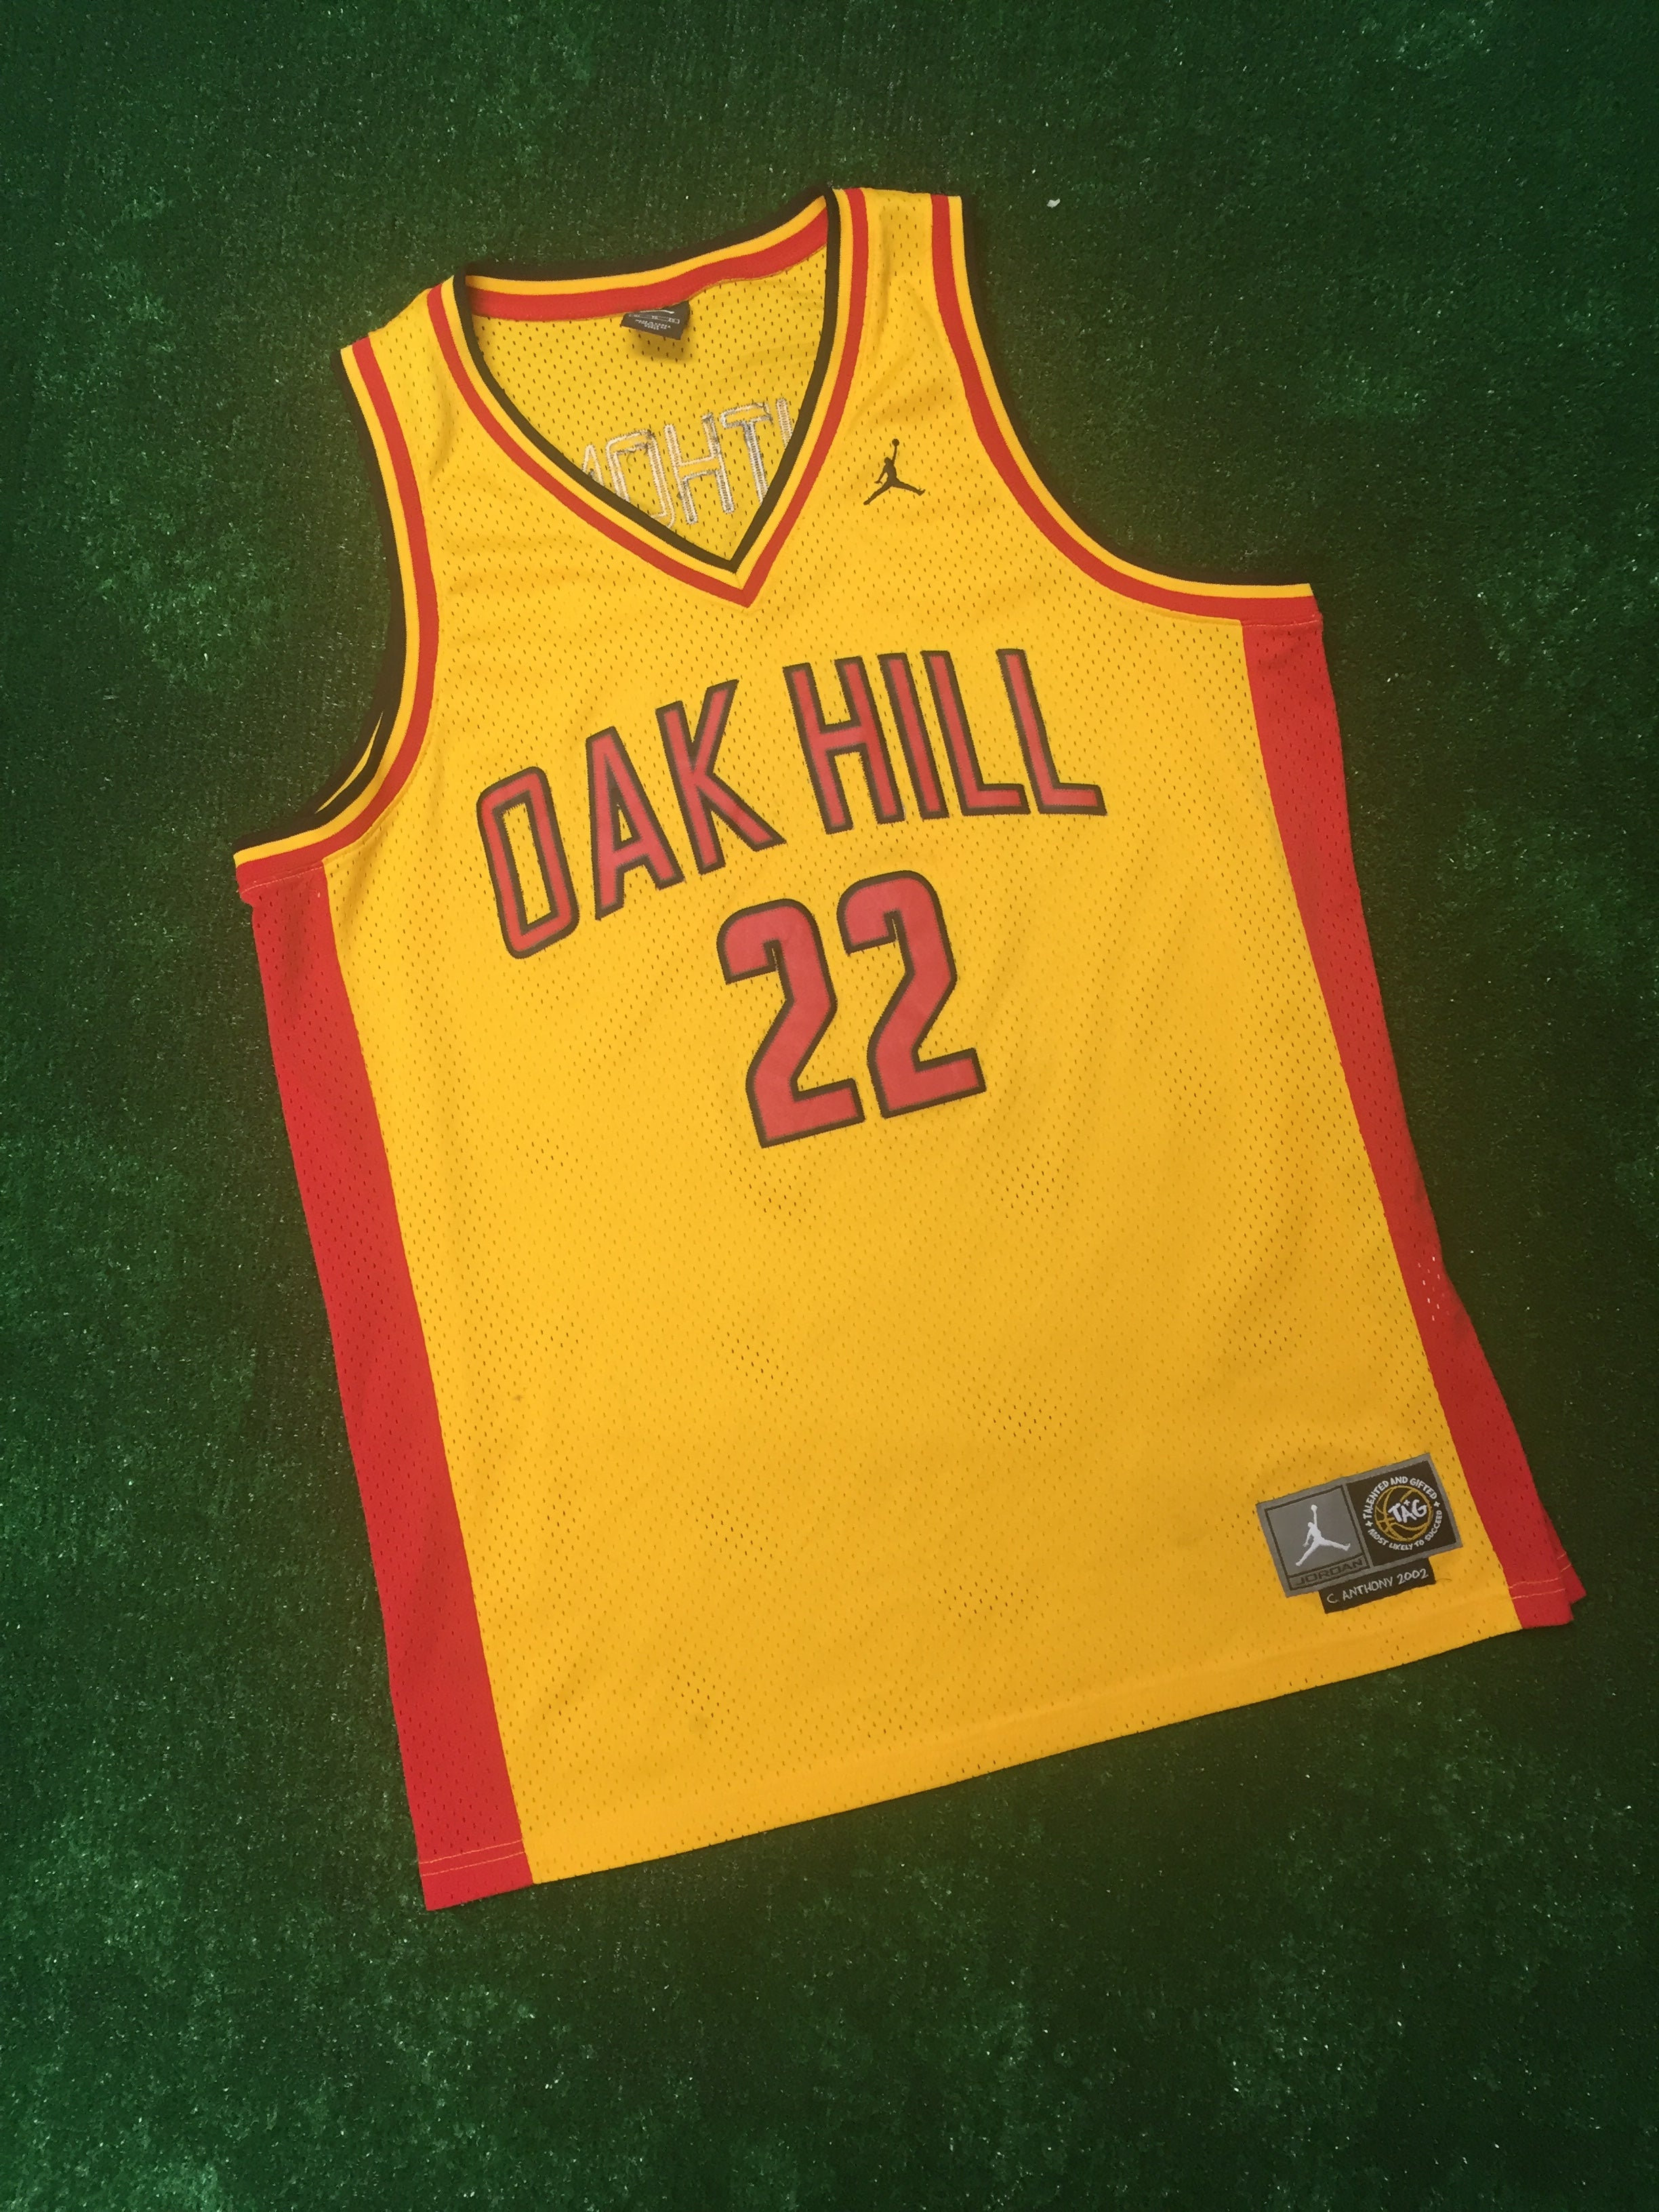 separation shoes 63d27 32cc9 canada carmelo anthony oak hill academy jersey 507e3 1c5af